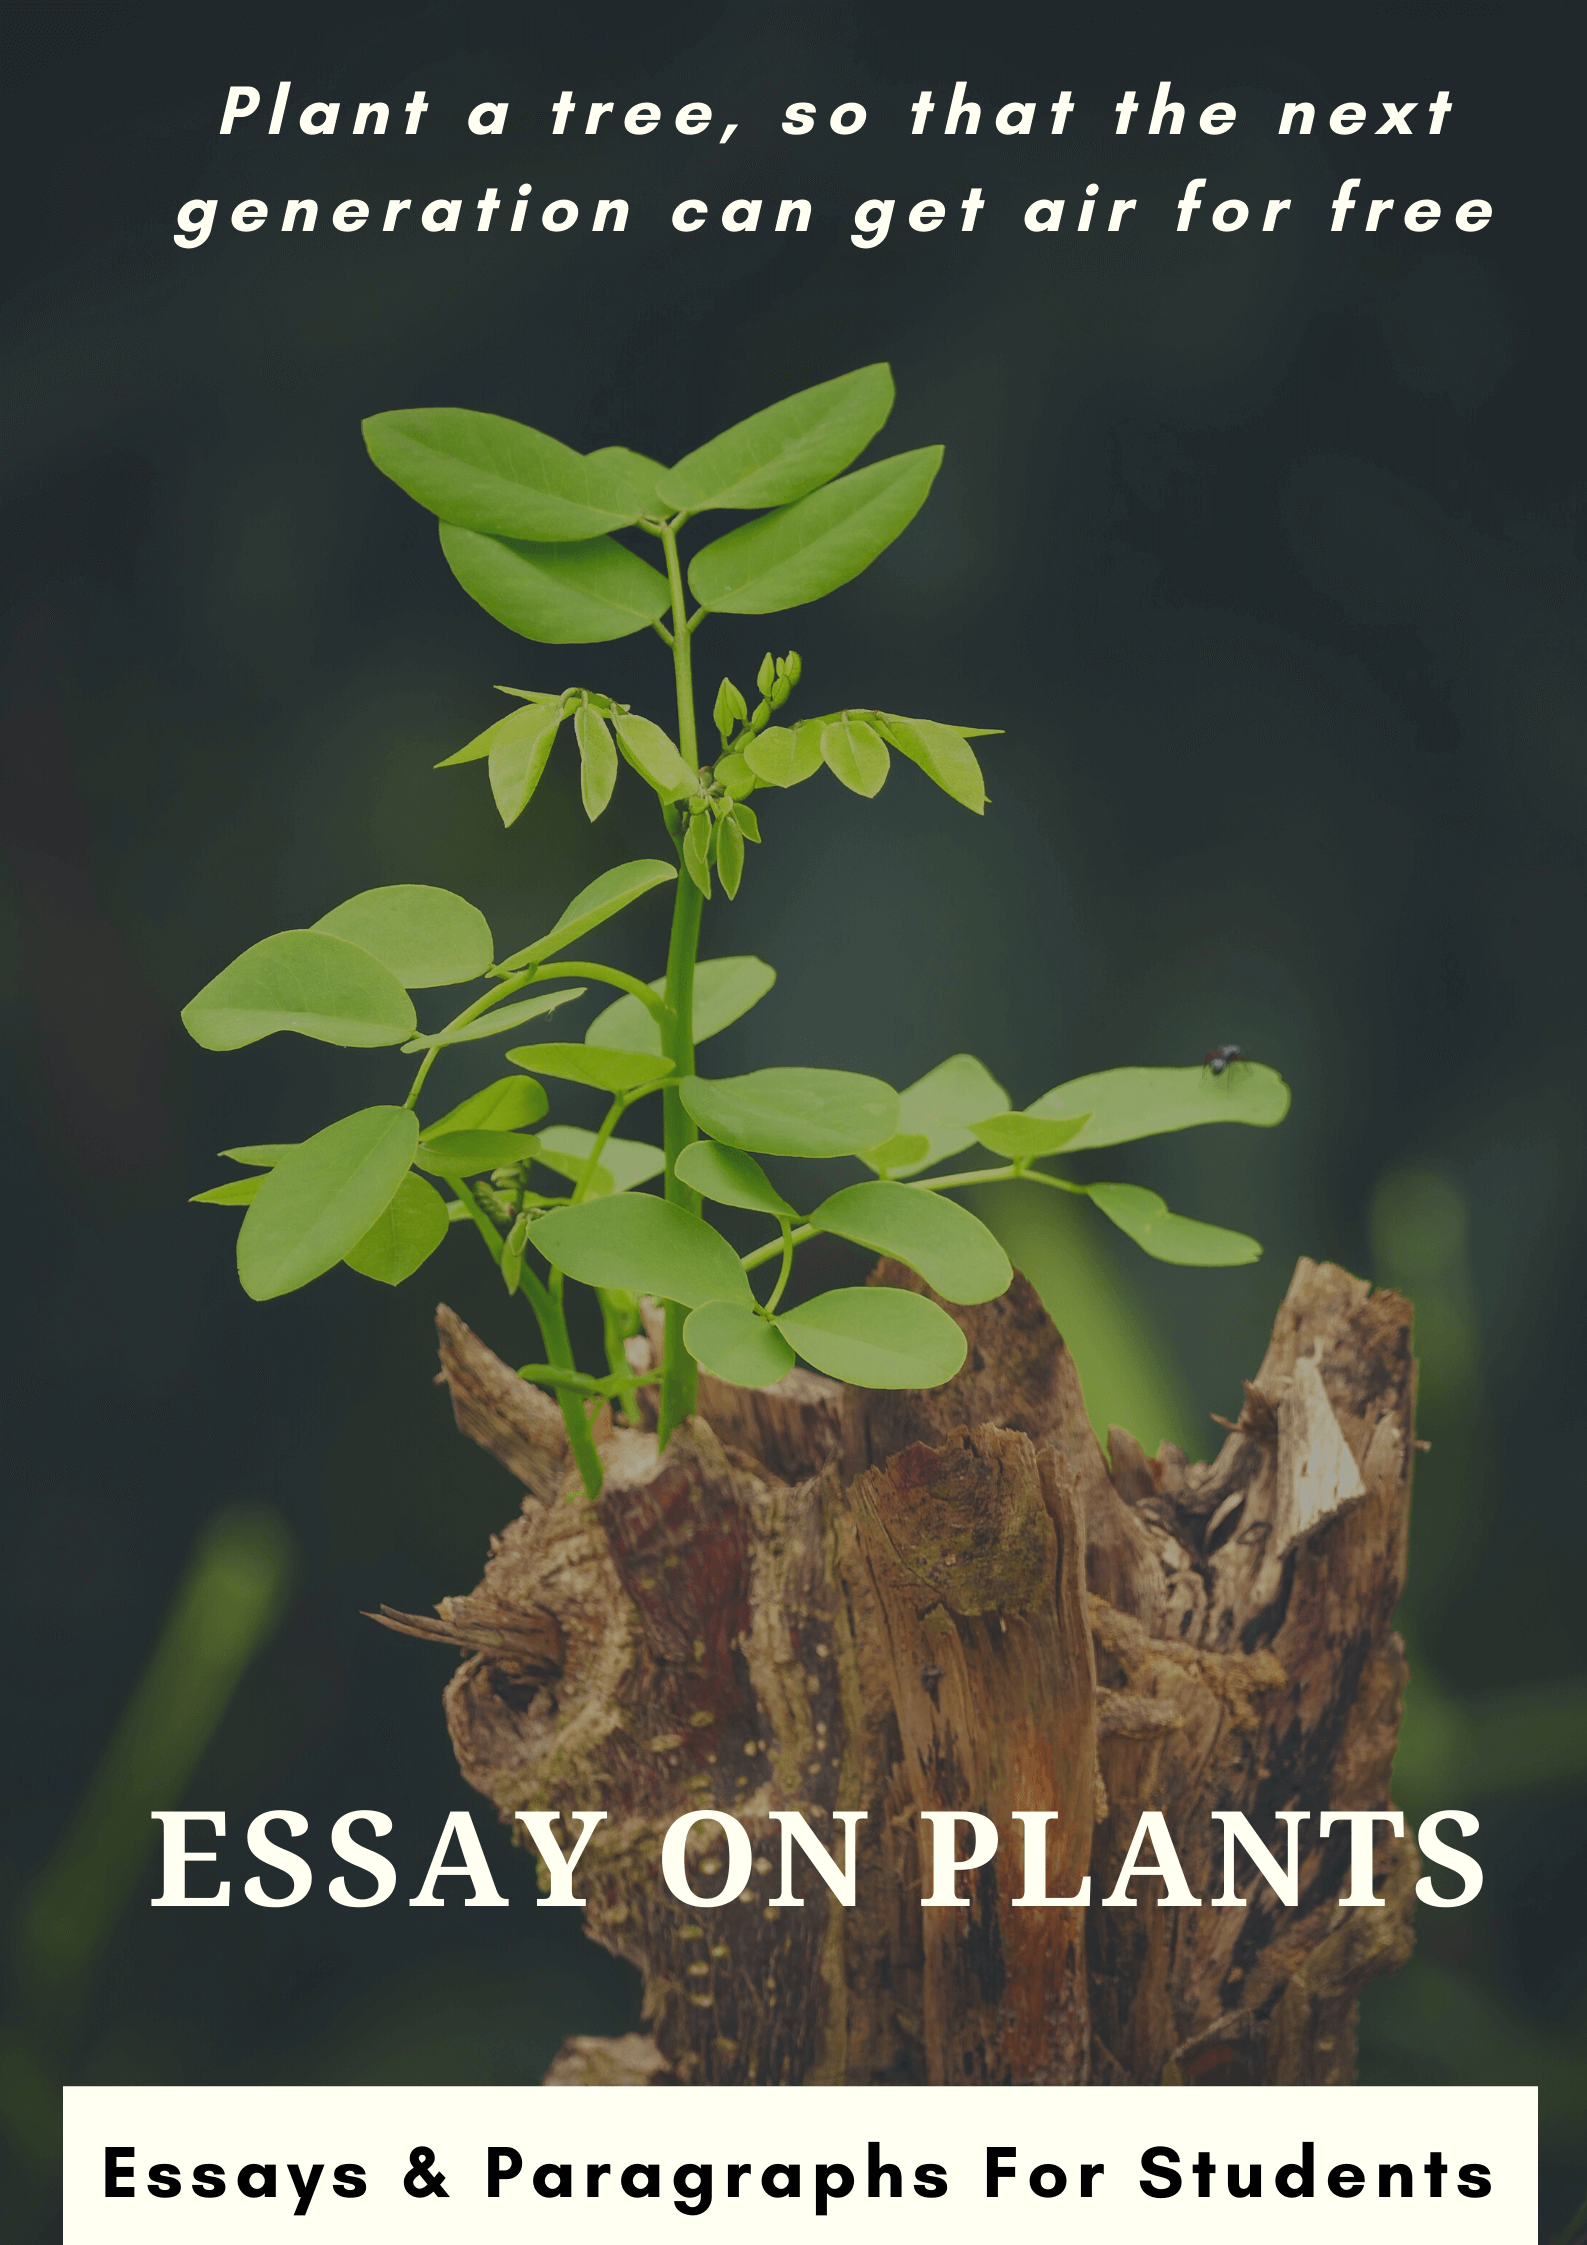 Essay on Plants For Students